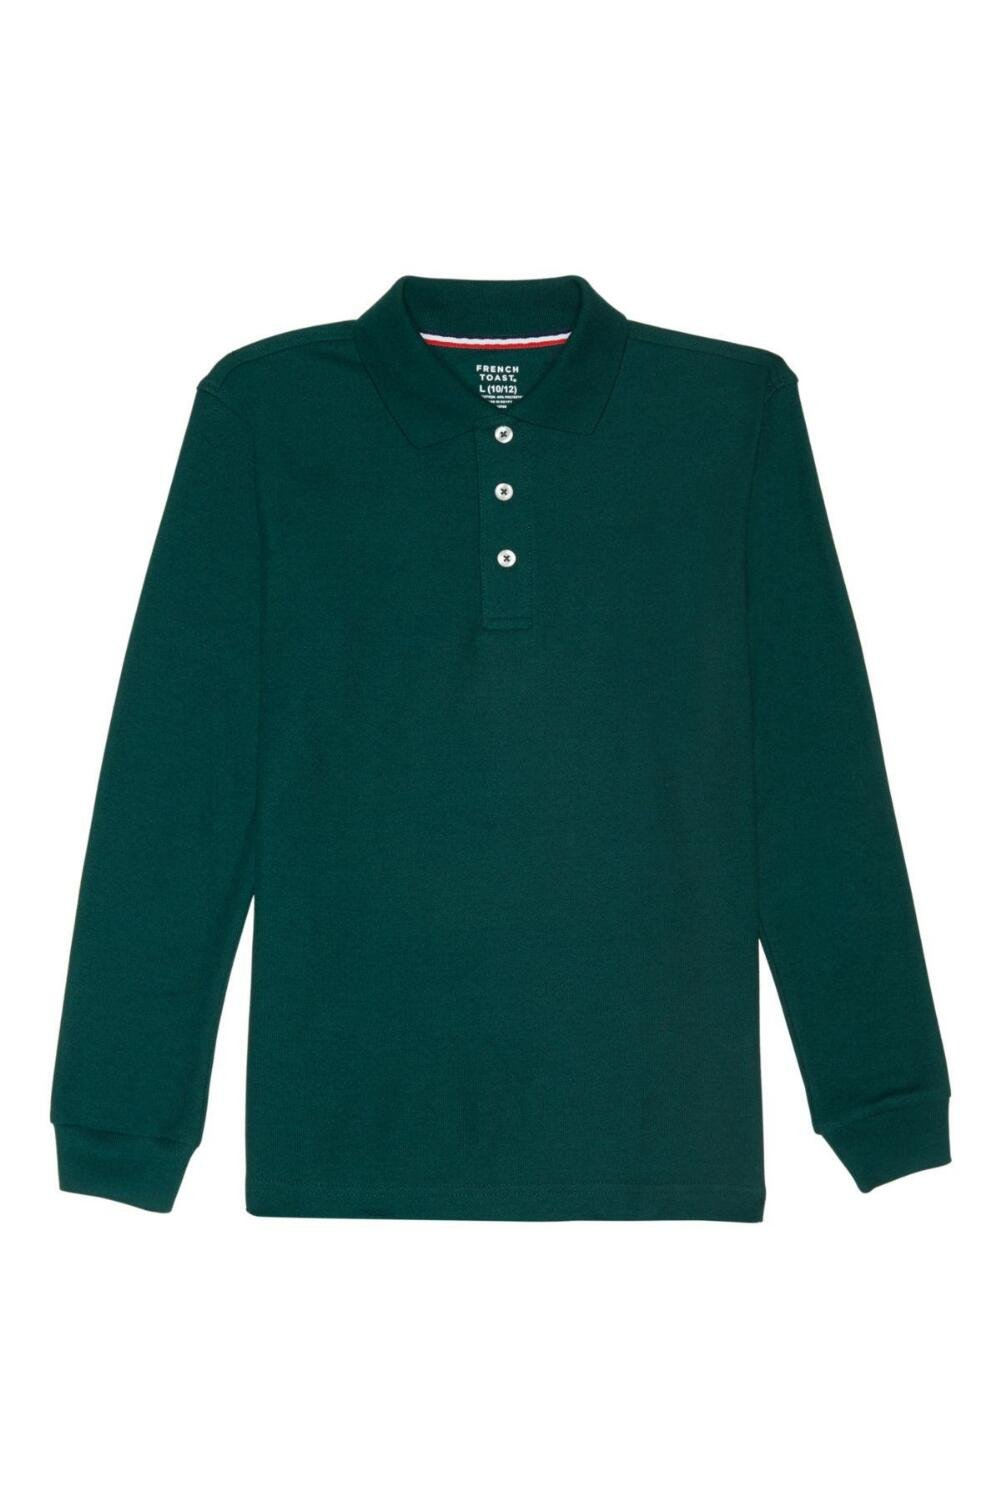 French Toast Long Sleeve Pique Polo Boys Green 18 by French Toast